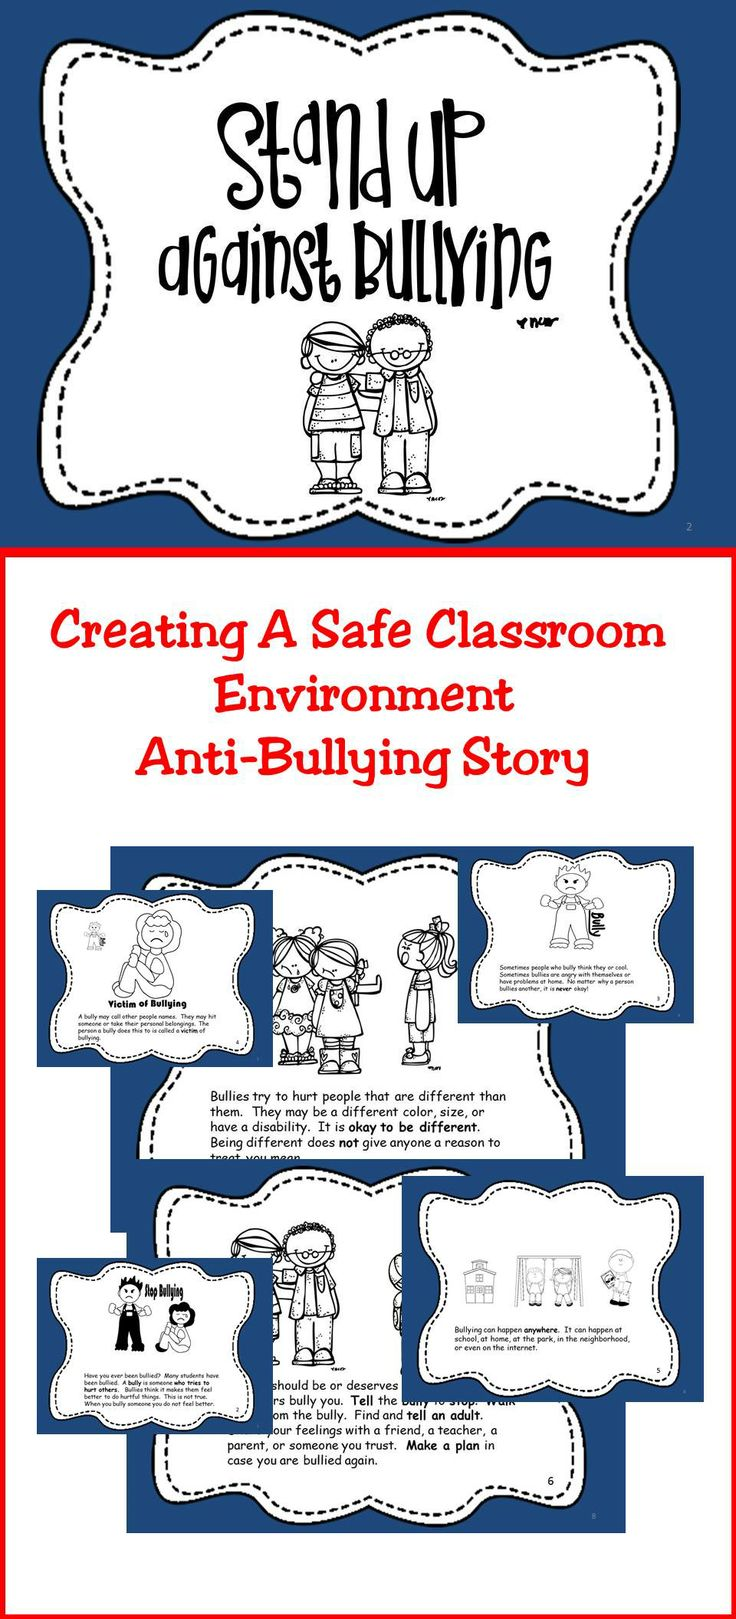 bullying and effective bullying prevention Best practices in bullying prevention and intervention  to be most effective, bullying prevention efforts require buy-in from the majority of the staff and from parents 4 form a group to coordinate the school's  should be trained in bullying prevention and intervention in-service training can help staff to.